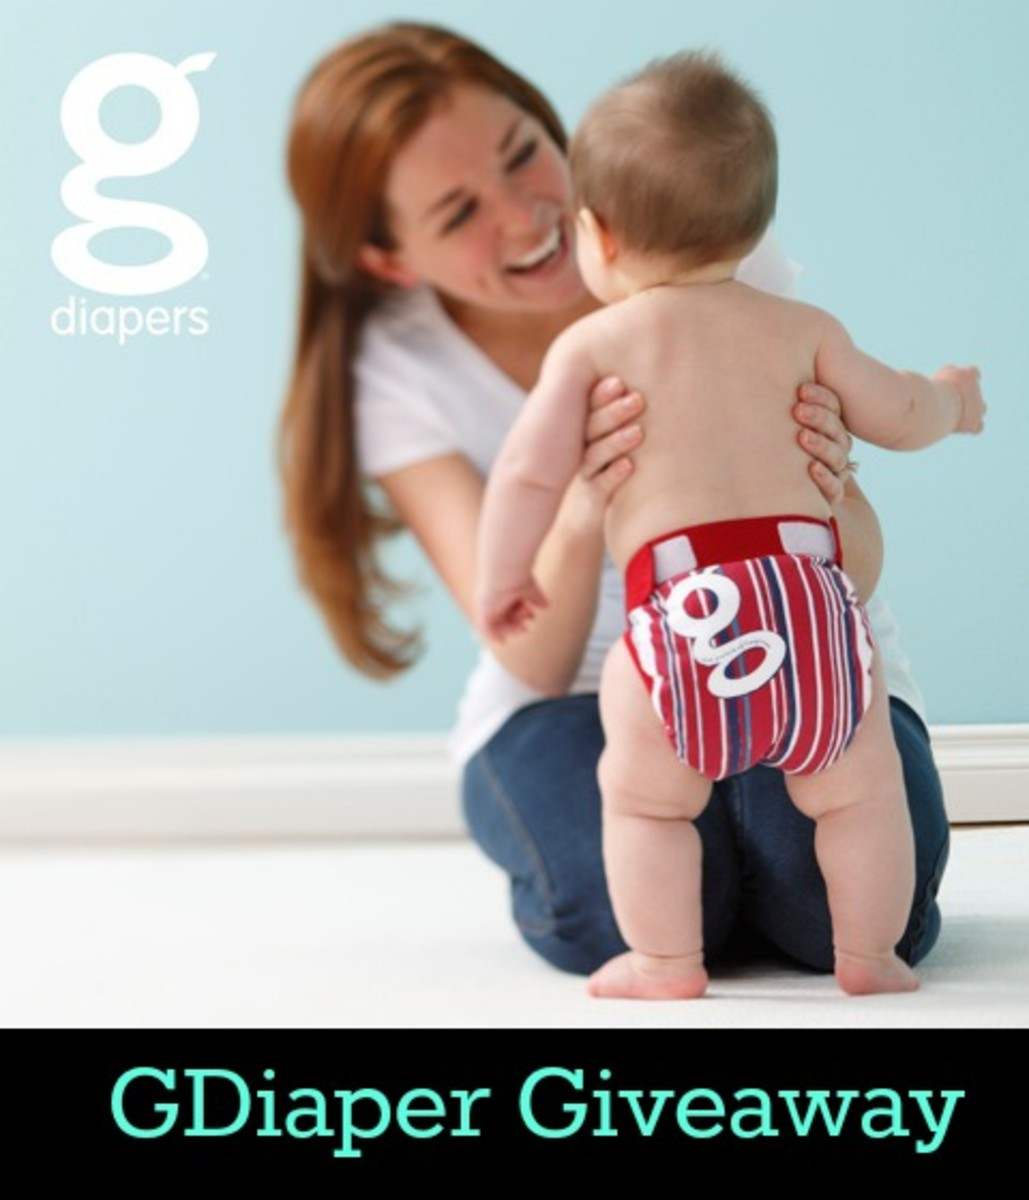 GDiaper Giveaway